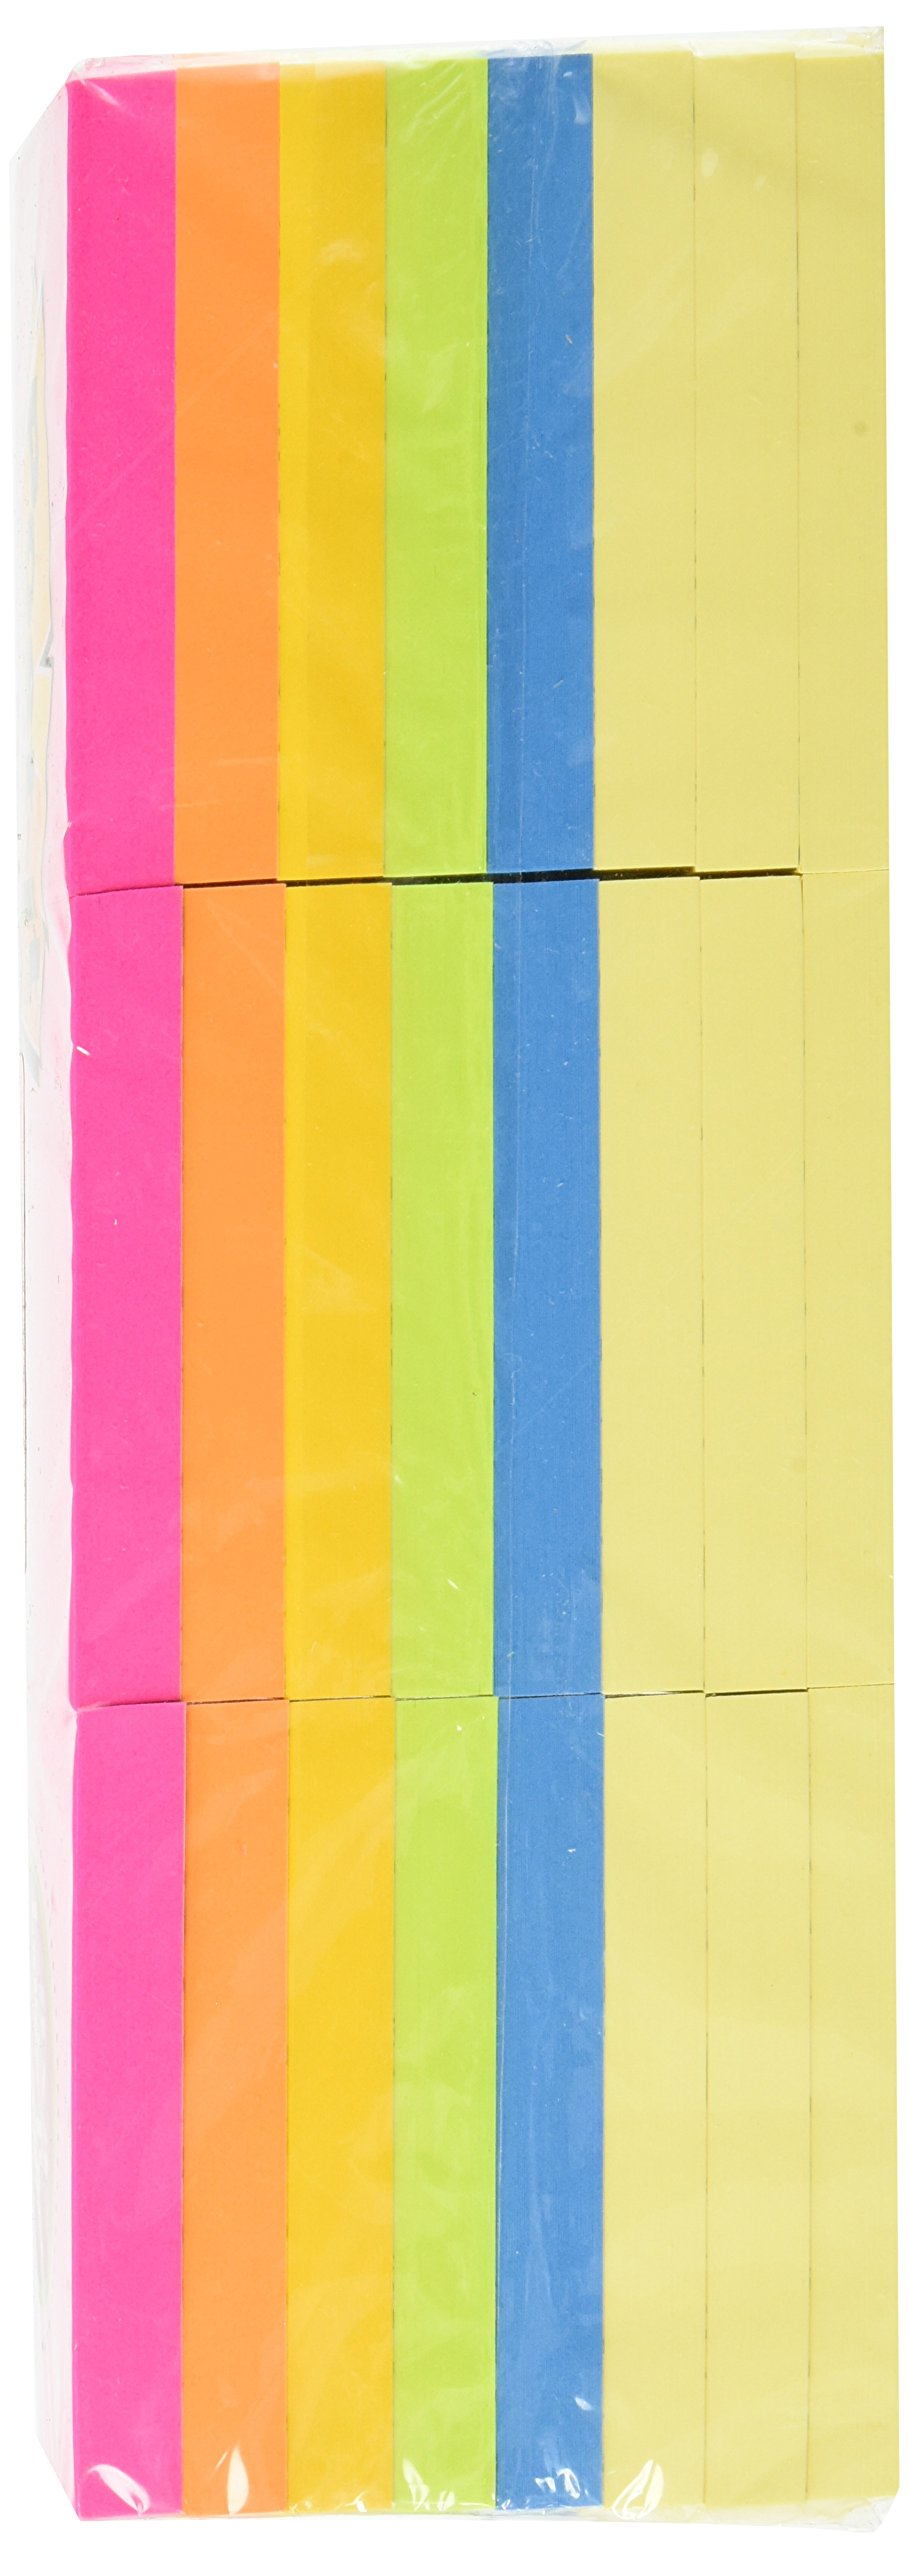 Post it Brand 3M 3 Inch X3Inch Post-IT Notes Large, 2400 Count